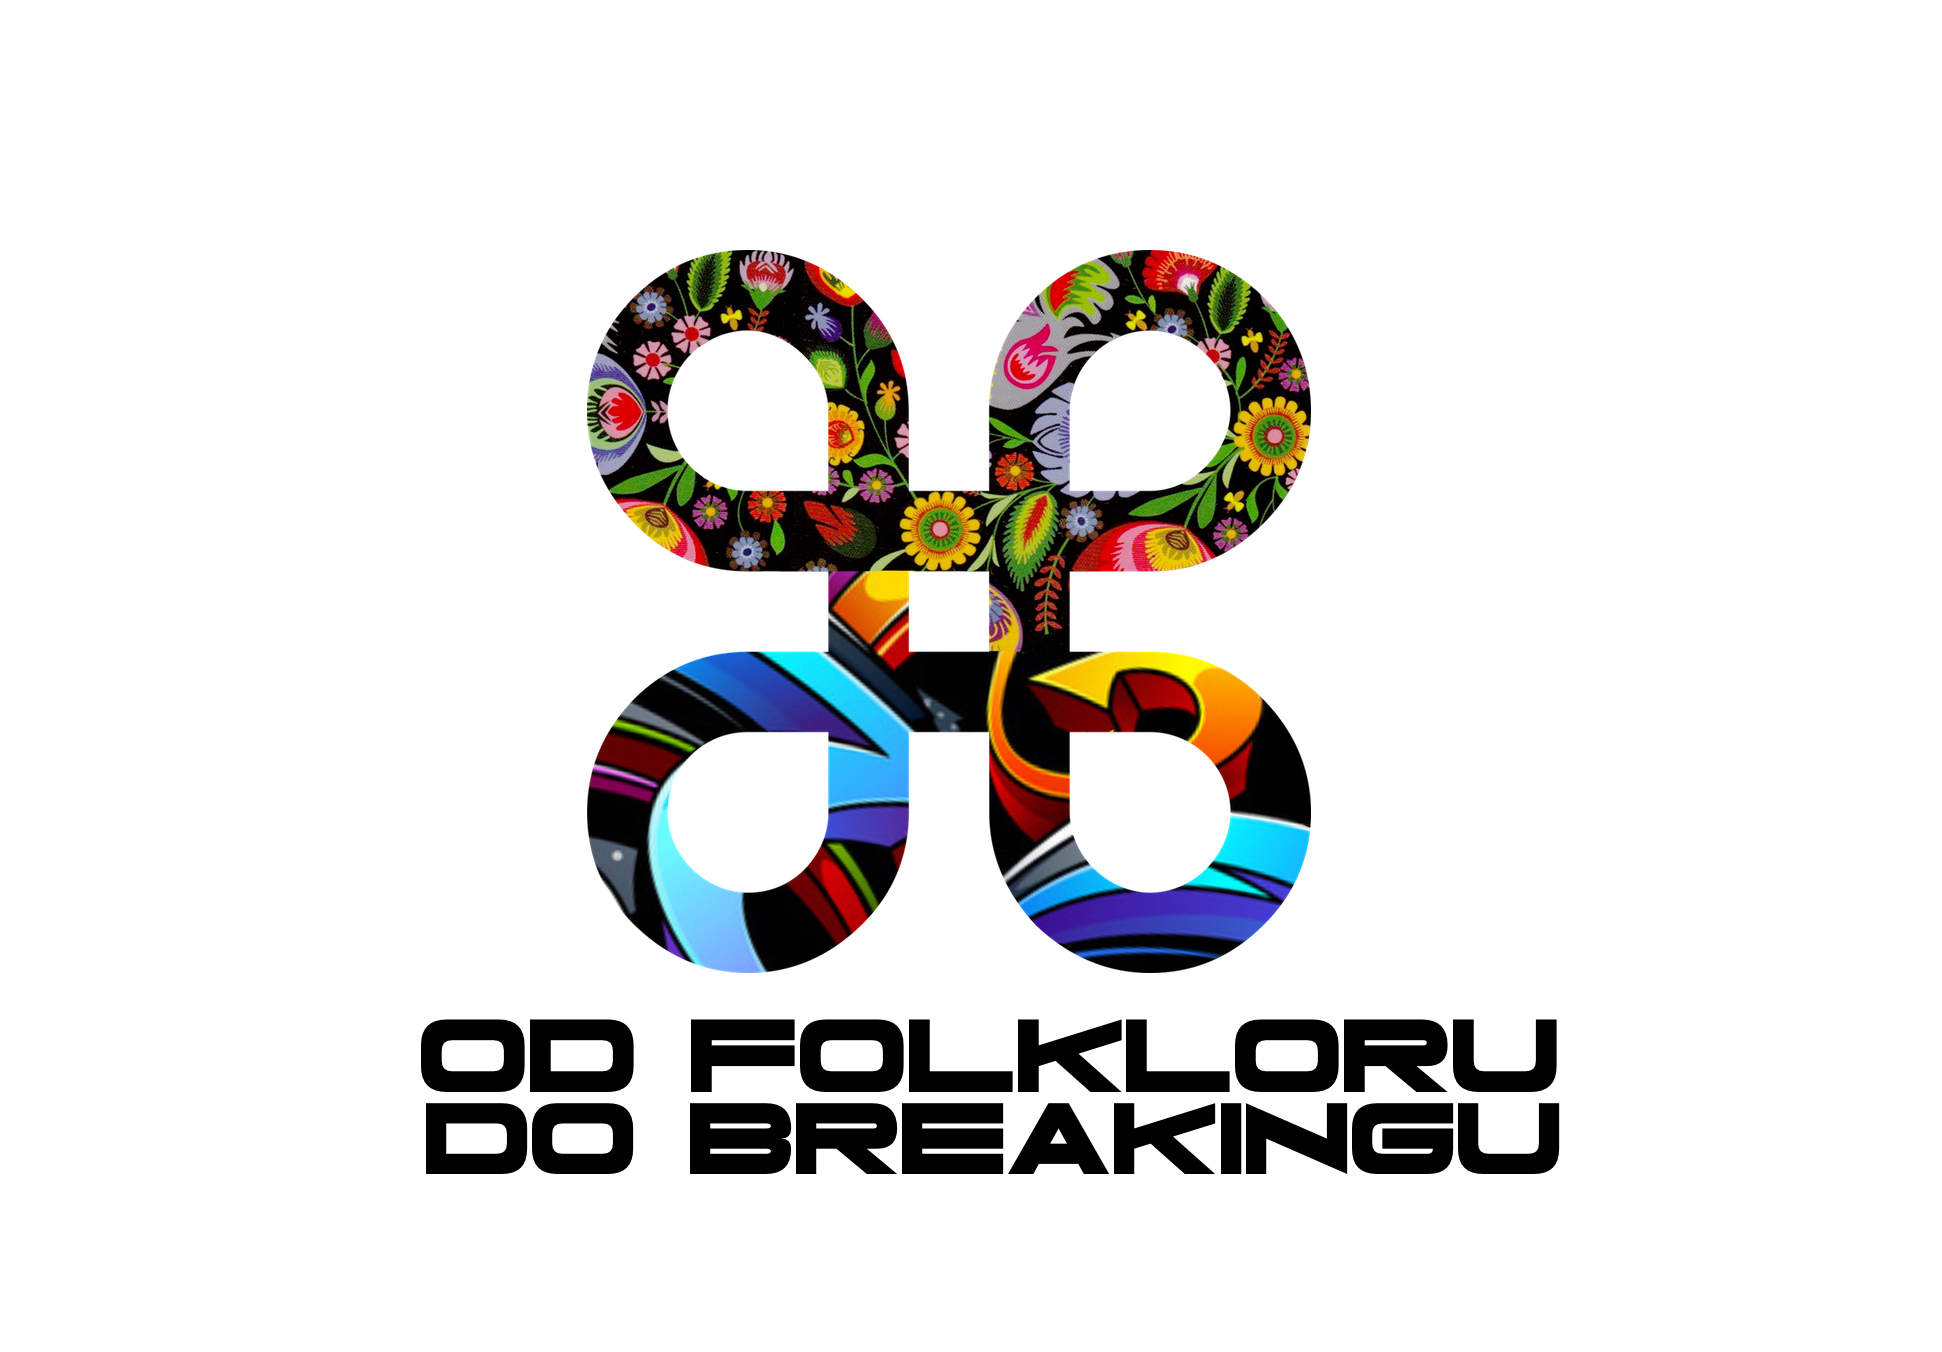 Od folkloru do breakingu